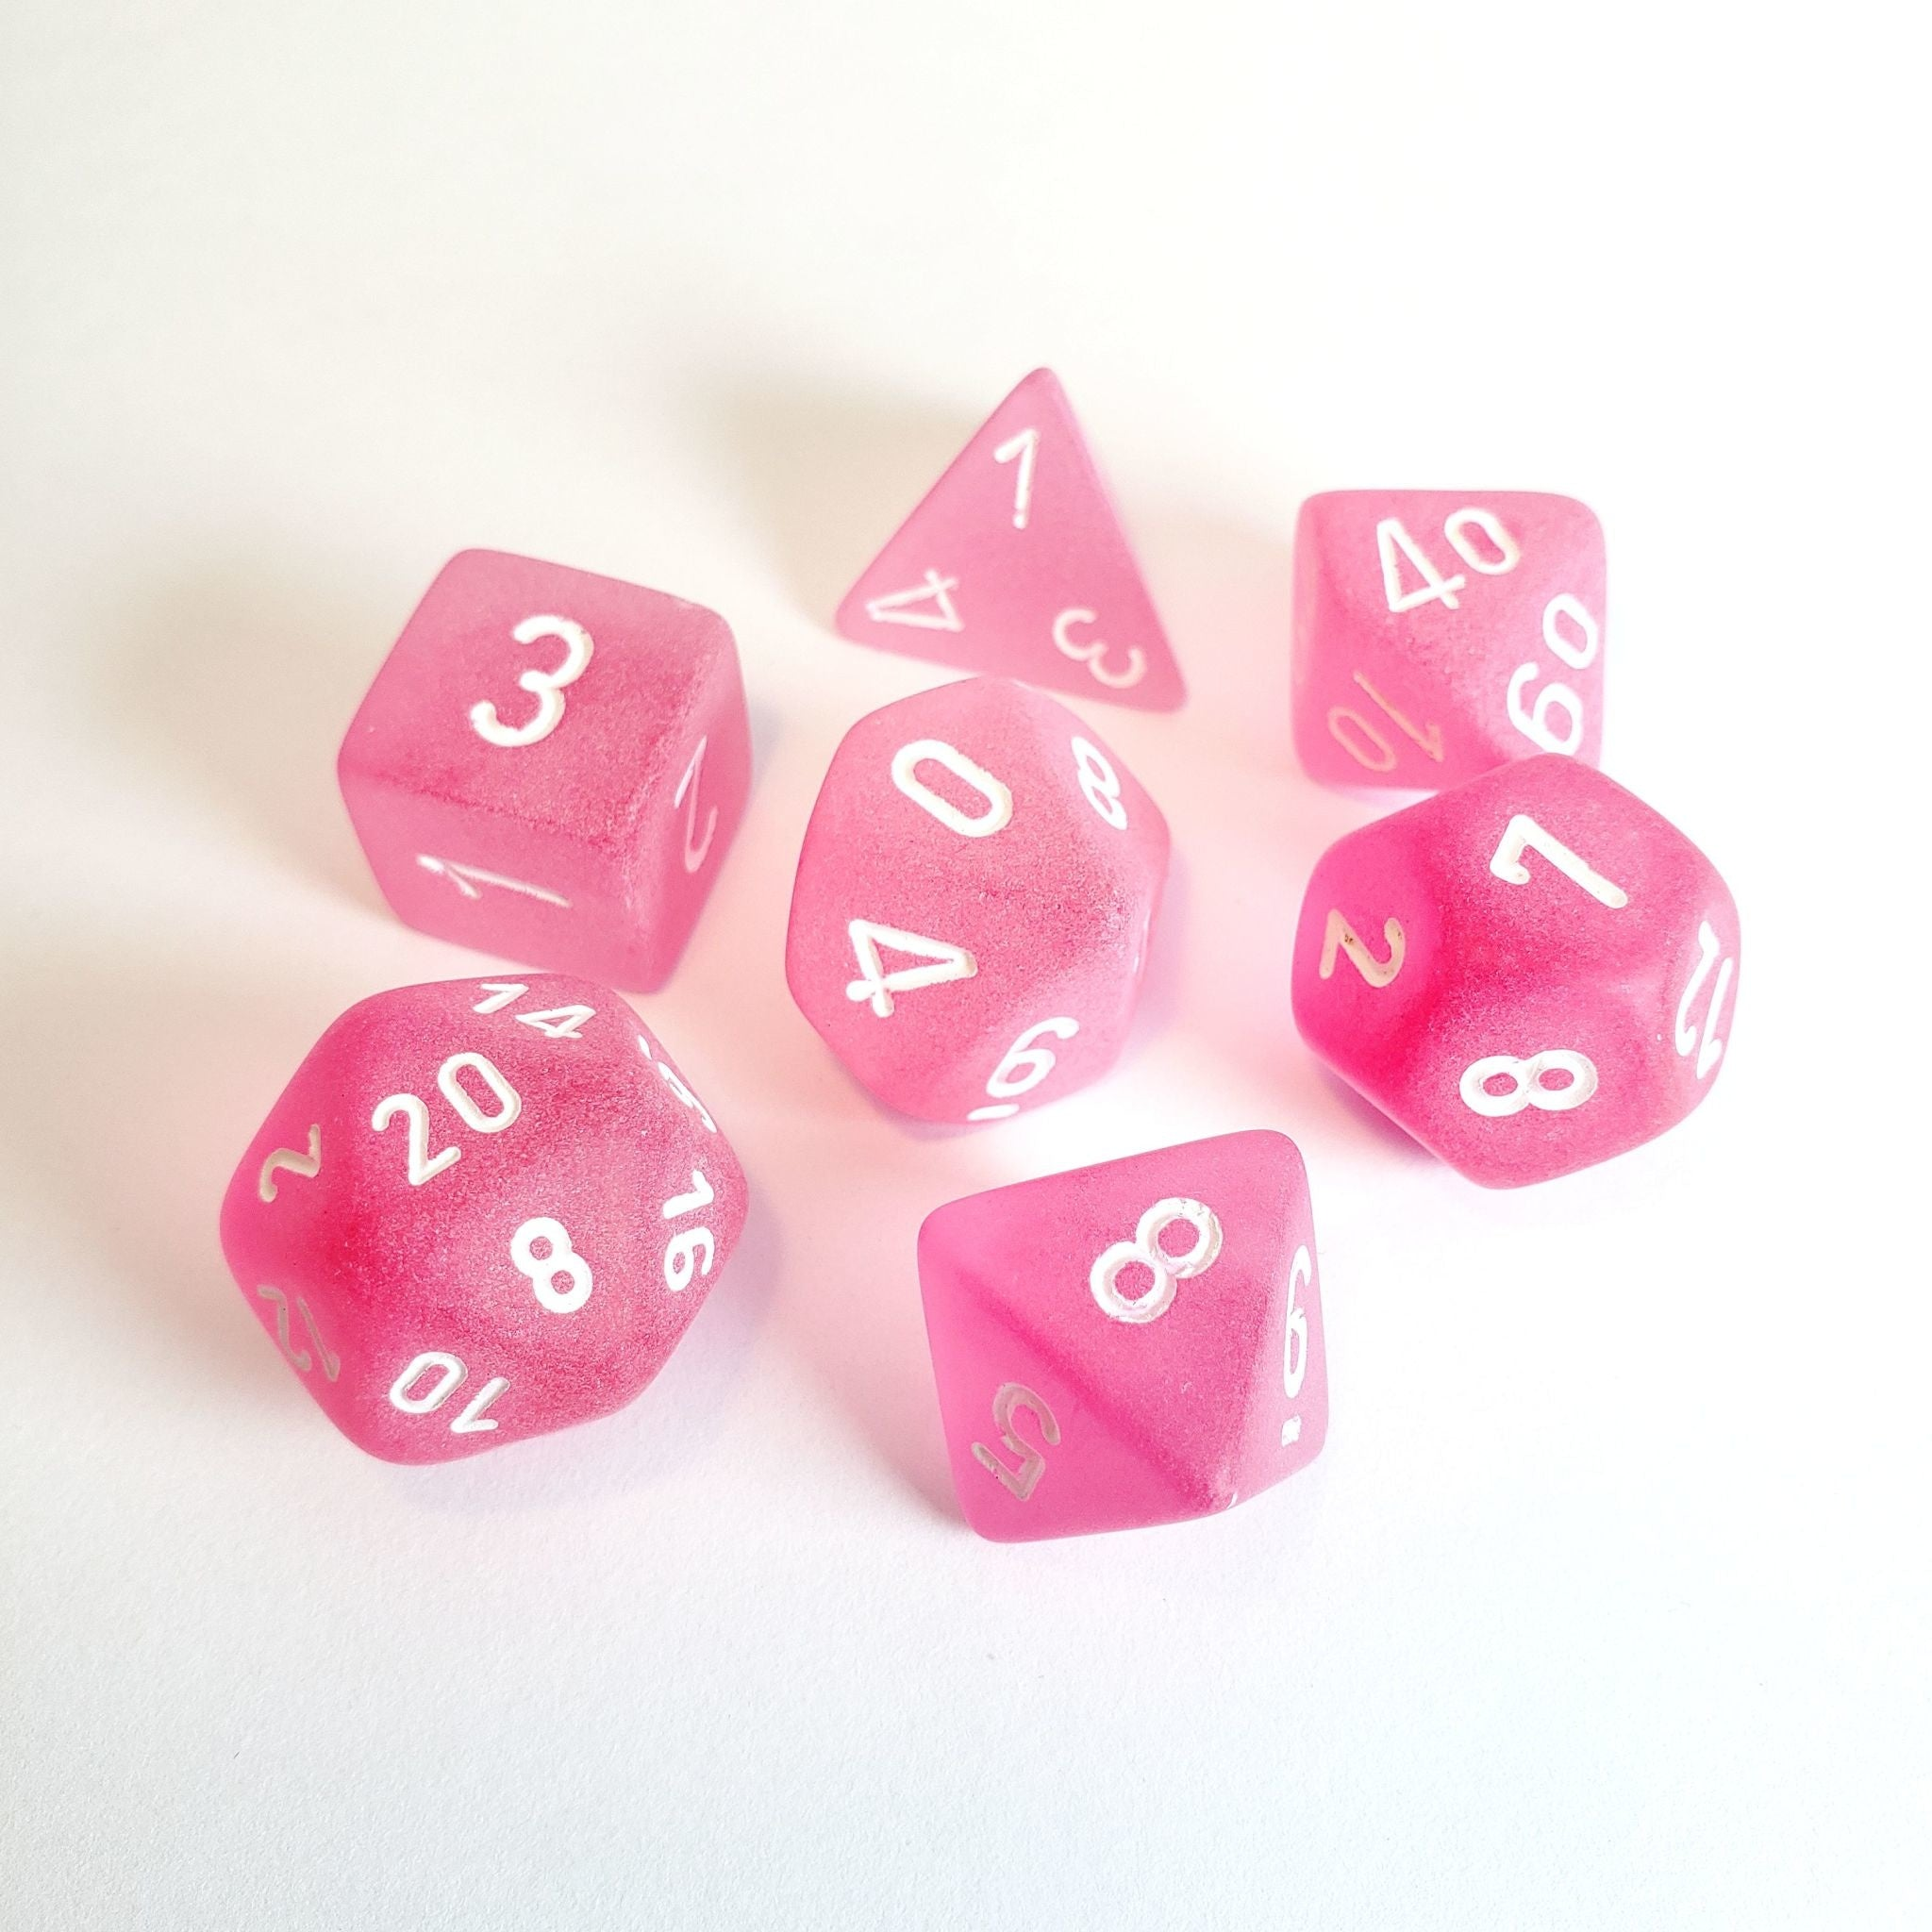 Chessex Frosted - Pink/White - 7 Dice Set | SKYFOX GAMES